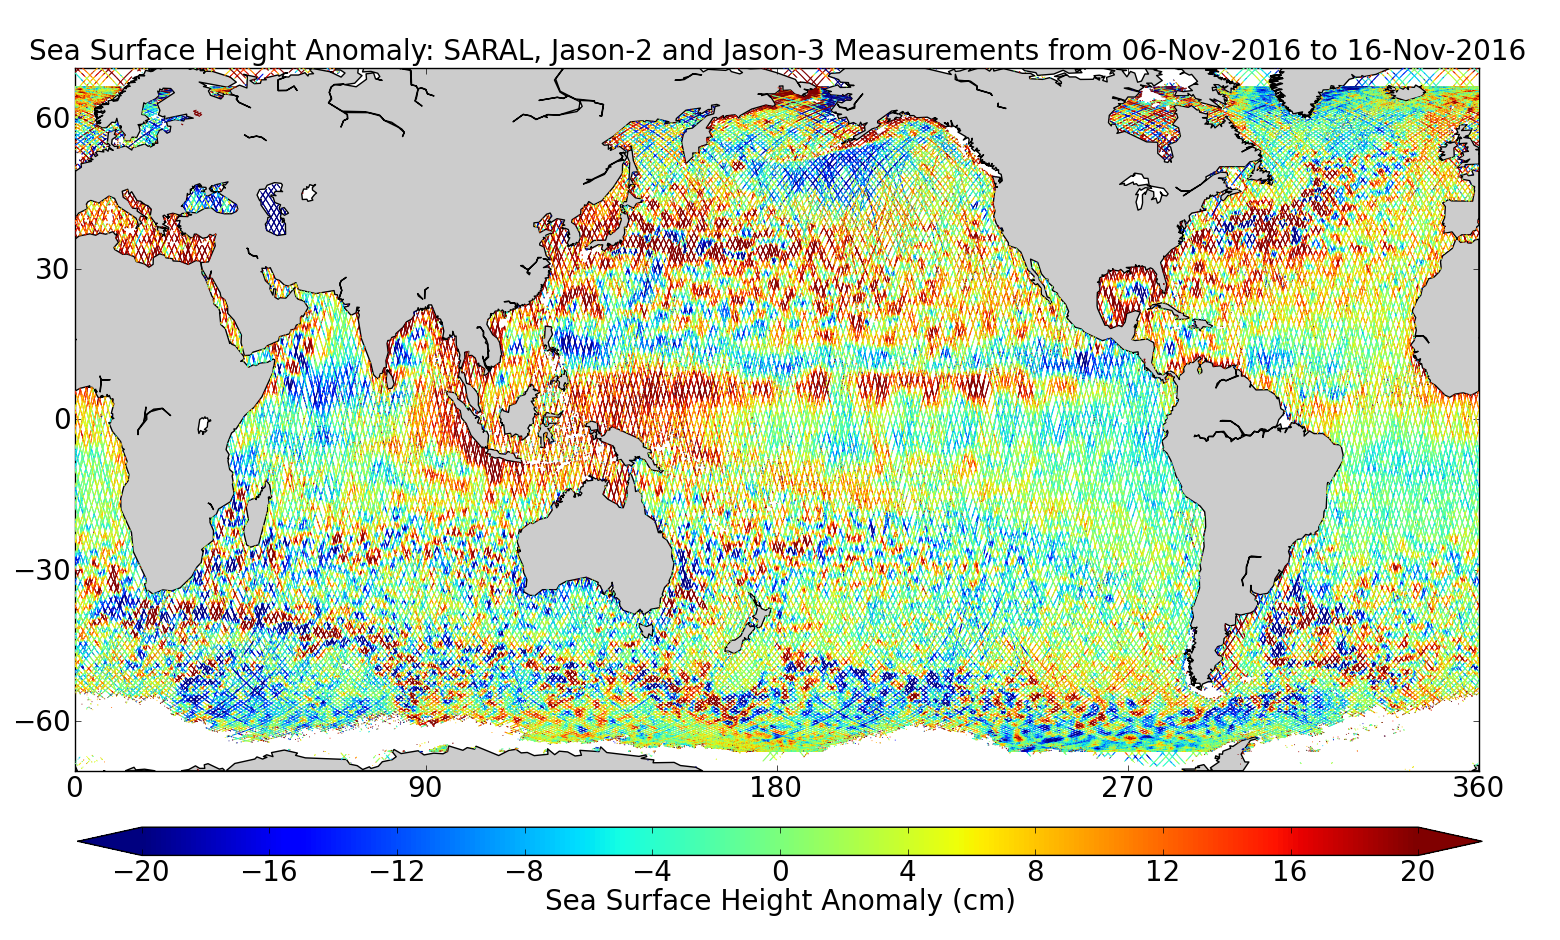 Sea Surface Height Anomaly: SARAL, Jason-2 and Jason-3 Measurements from 06-Nov-2016 to 16-Nov-2016